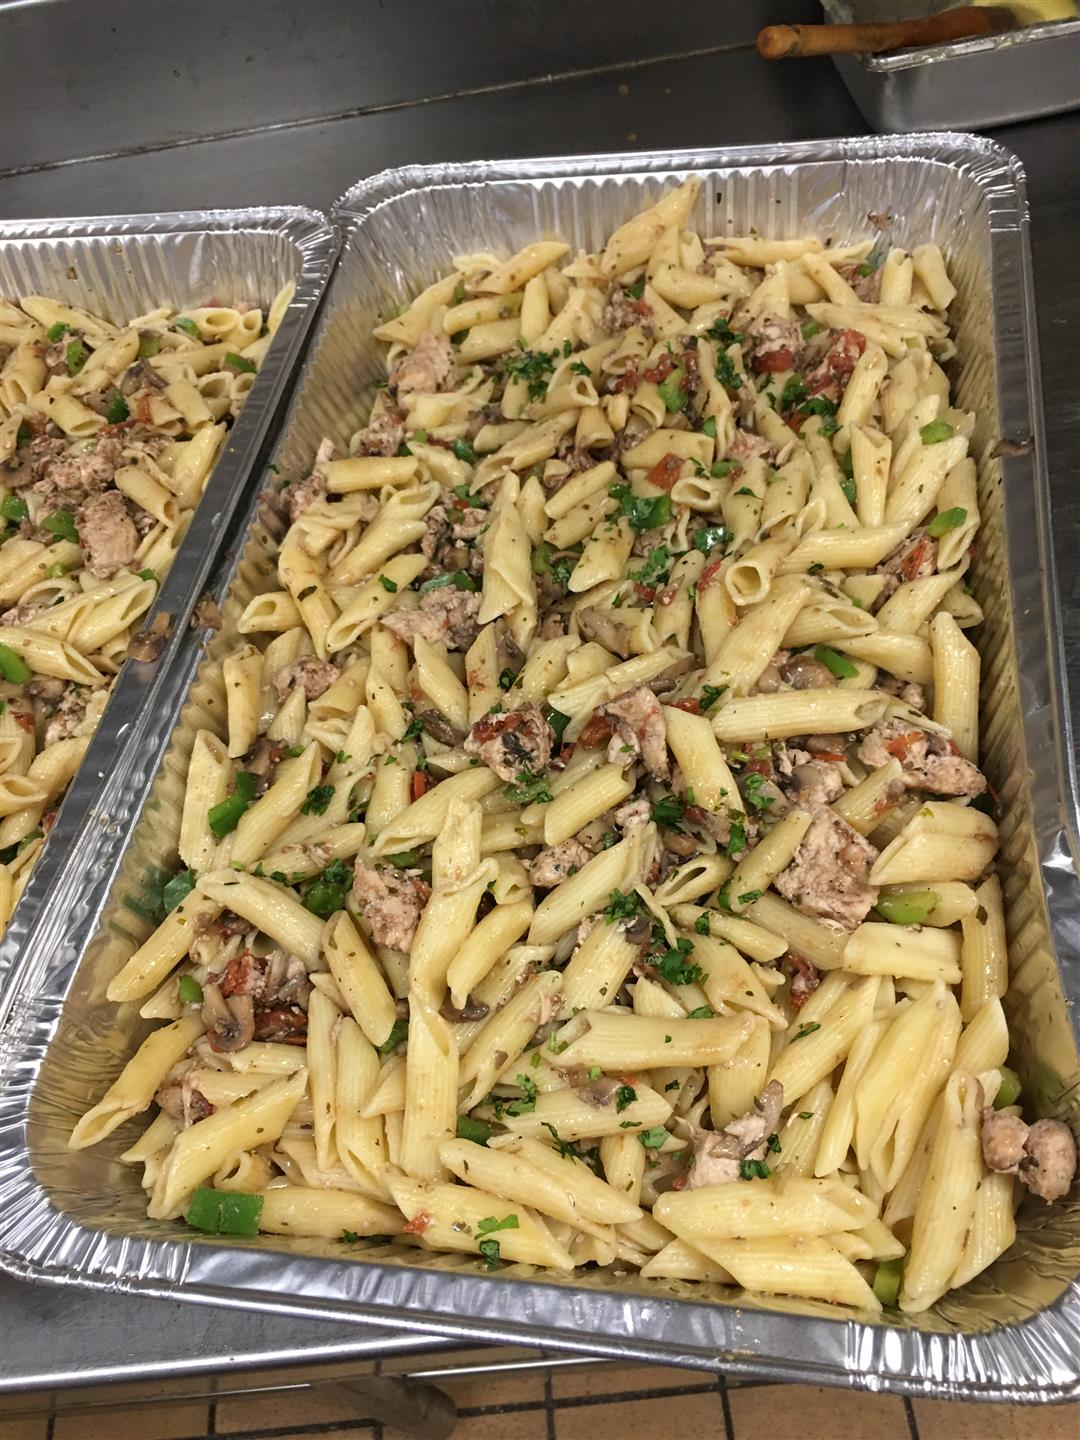 two trays of penne pasta